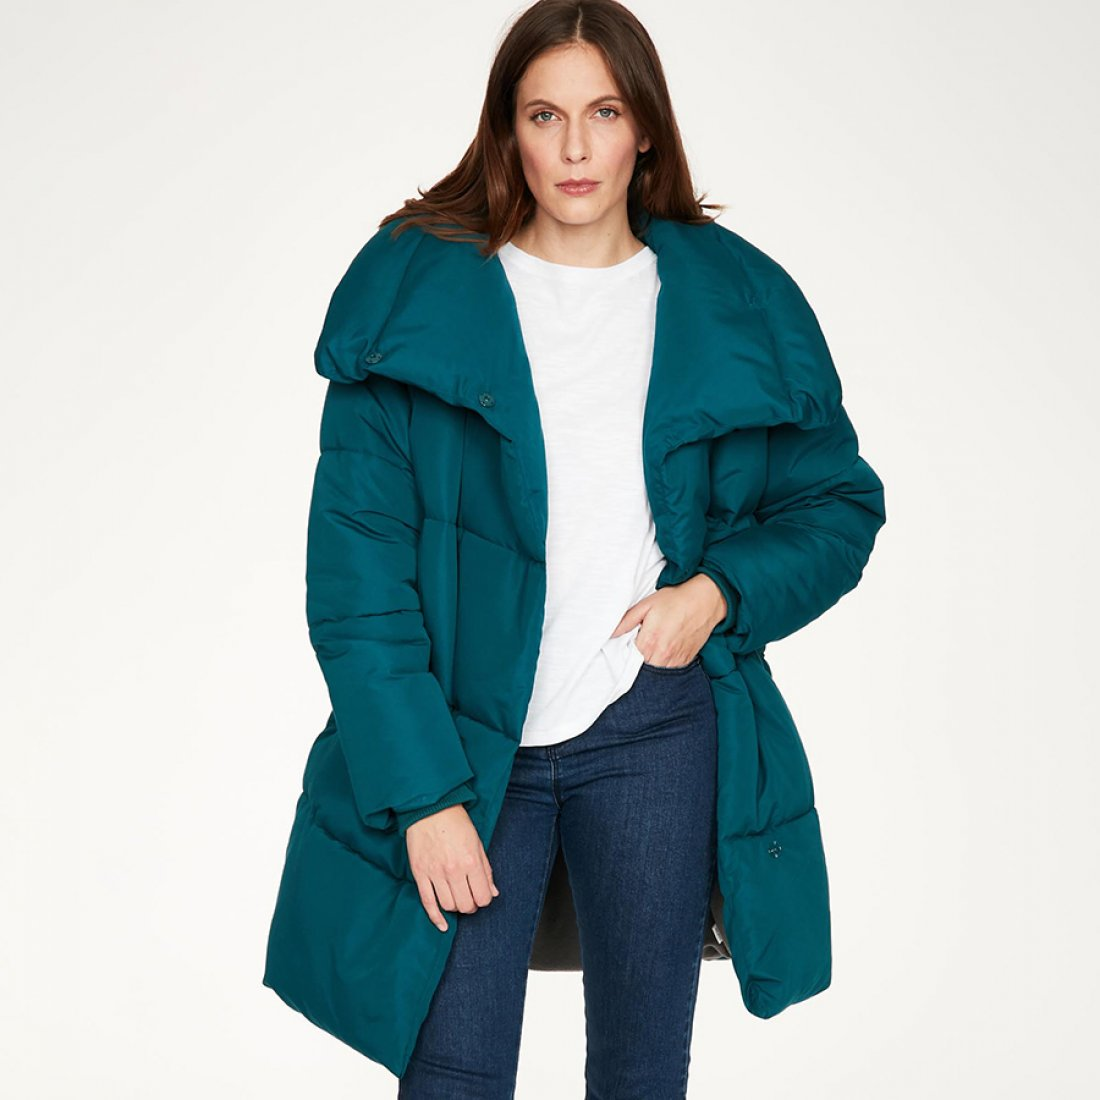 479066-Thought-KINGFISHER-GREEN-Phebe-Puffa-Jacket-Recycled-Polyester-6